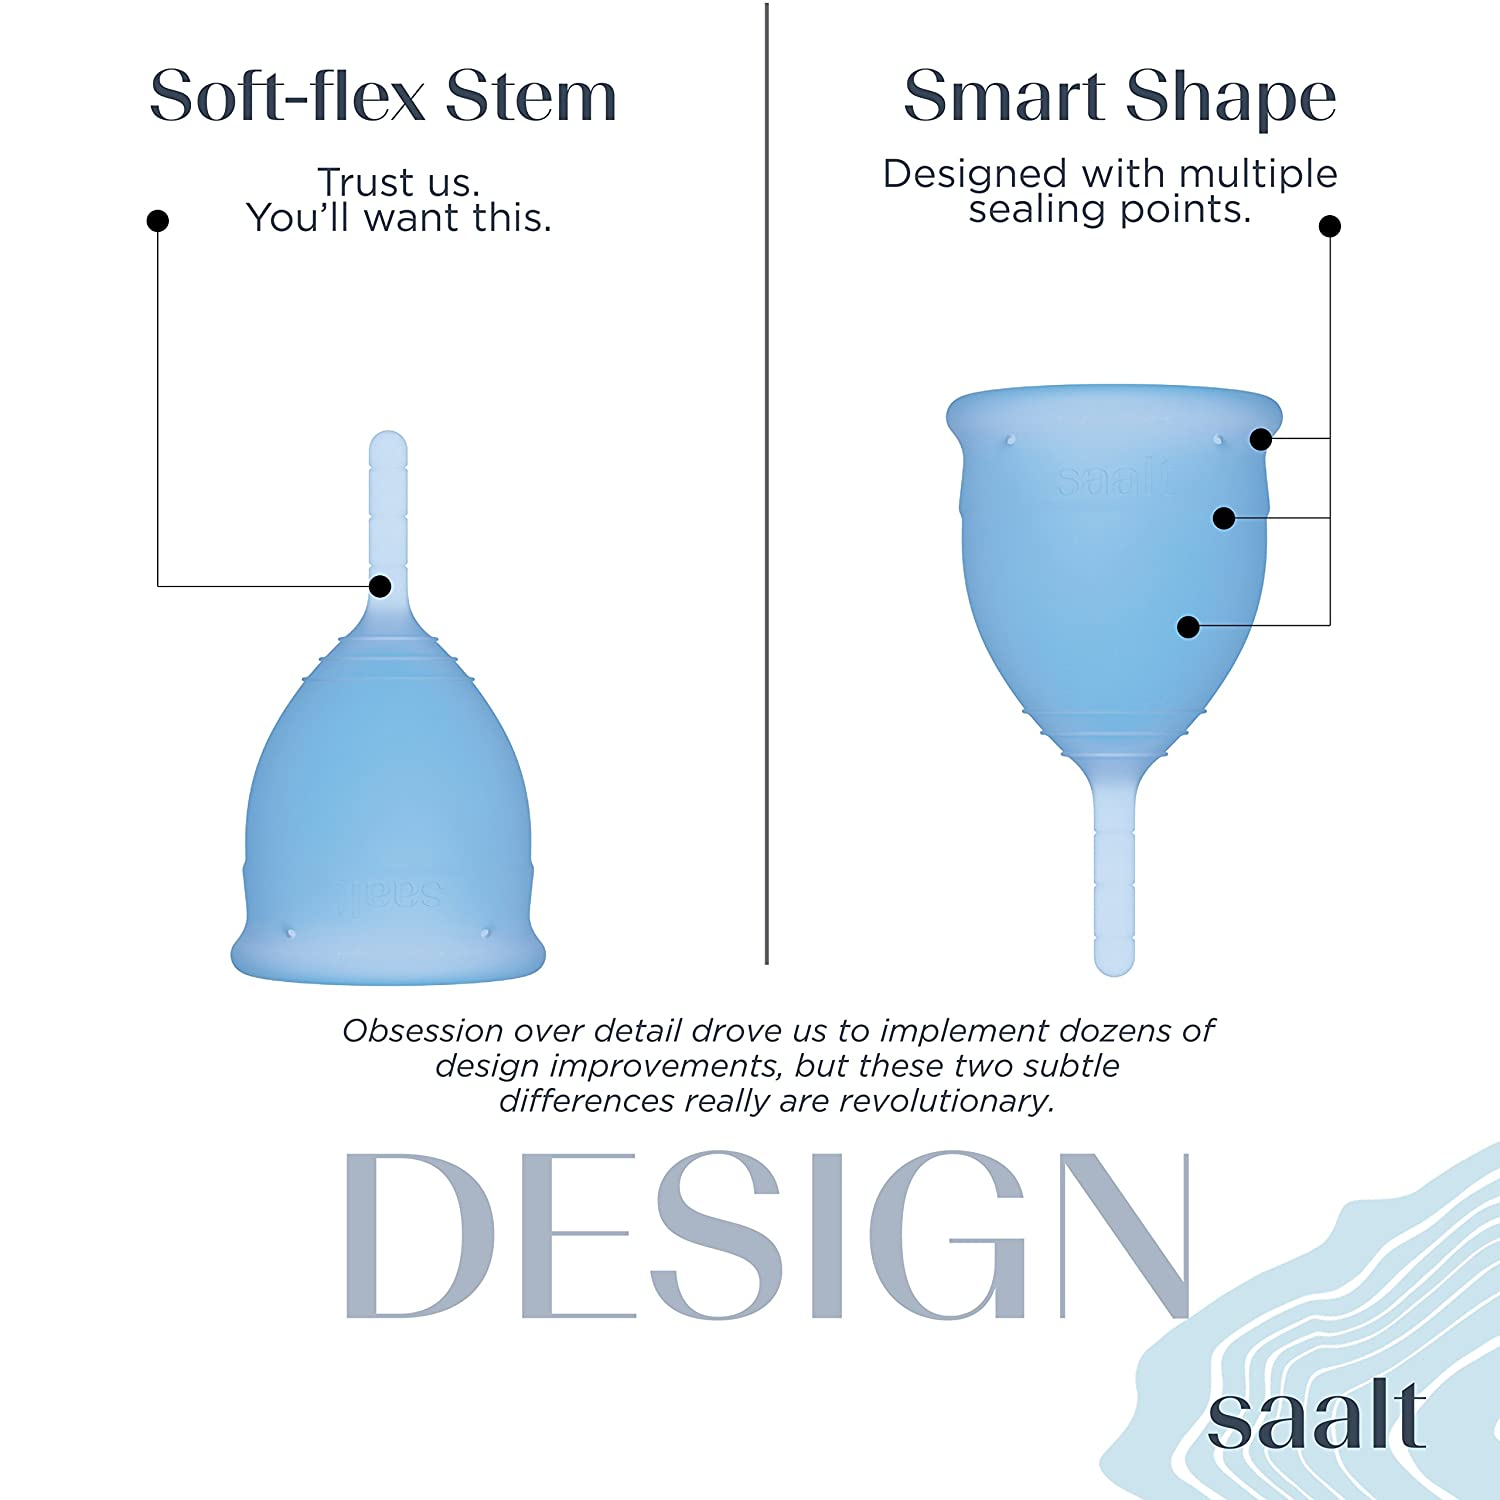 Most Comfortable Period Cup Small, Himalayan Pink Wear for 12 Hours Reusable Medical-Grade Silicone Premium Design Flexible Saalt Menstrual Cup #1 Active Cup Soft